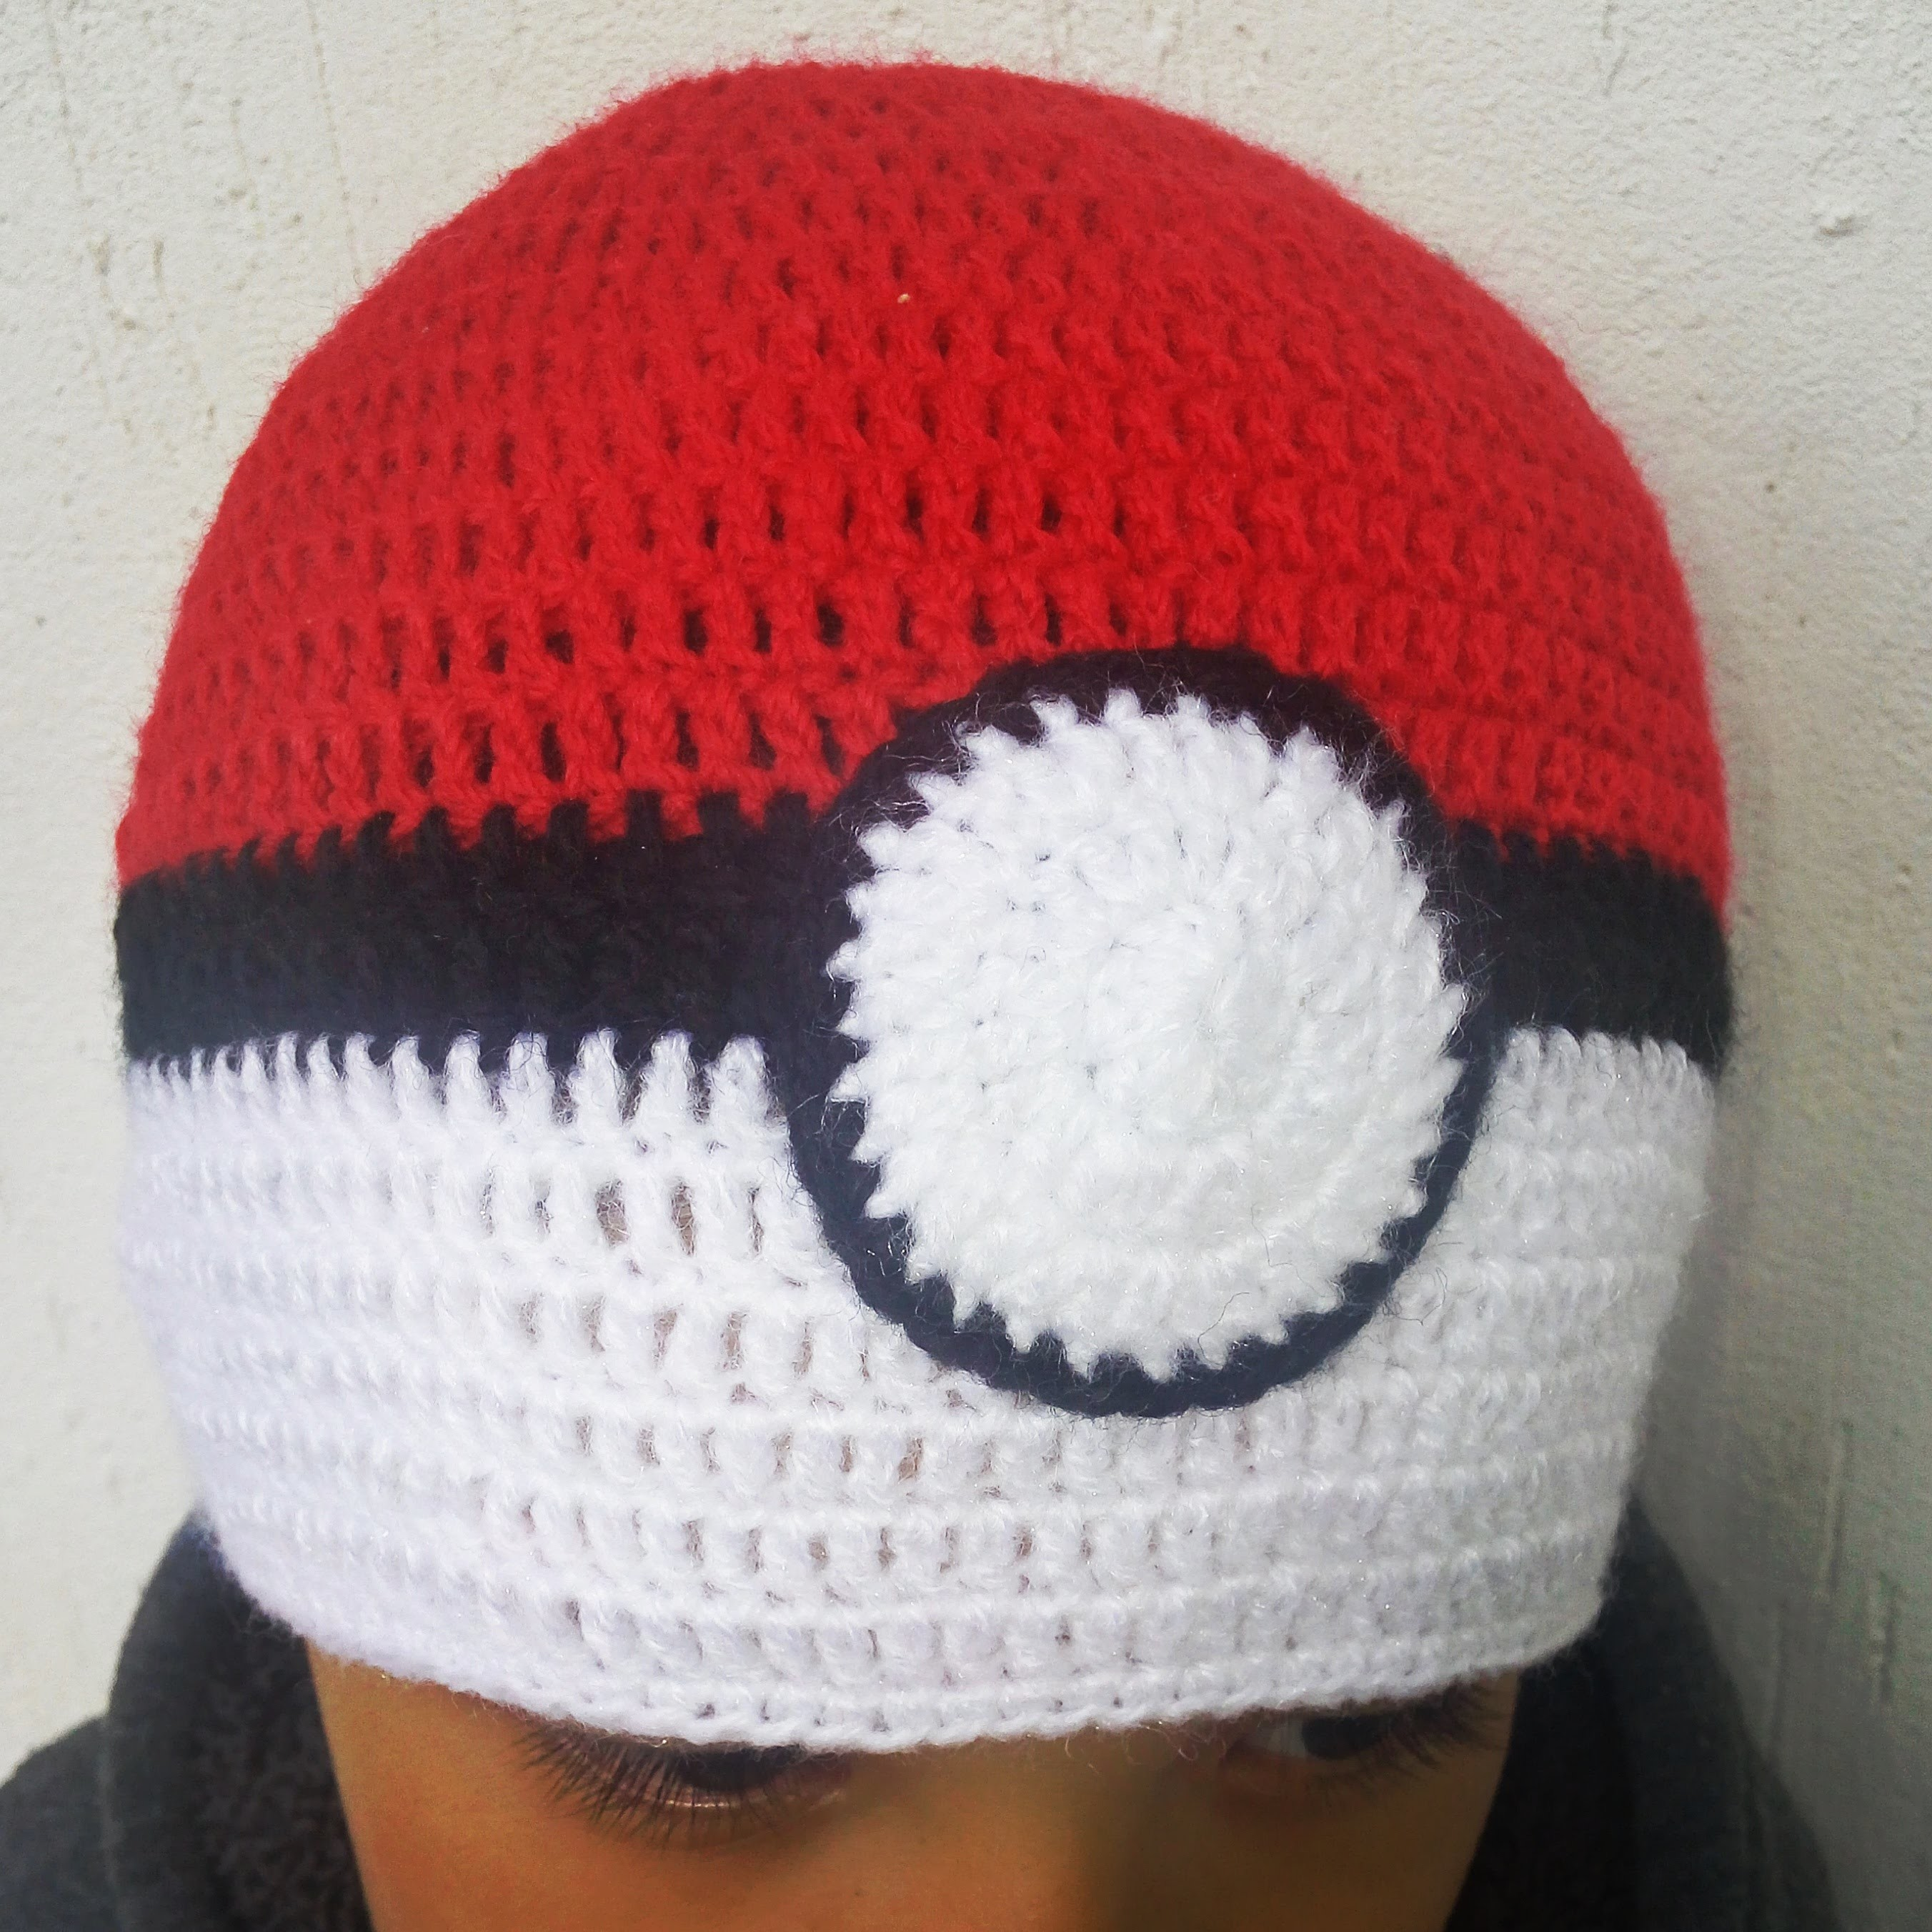 Crochet, Gorro pokeball a crochet, Gorro pokeball a crochet ...